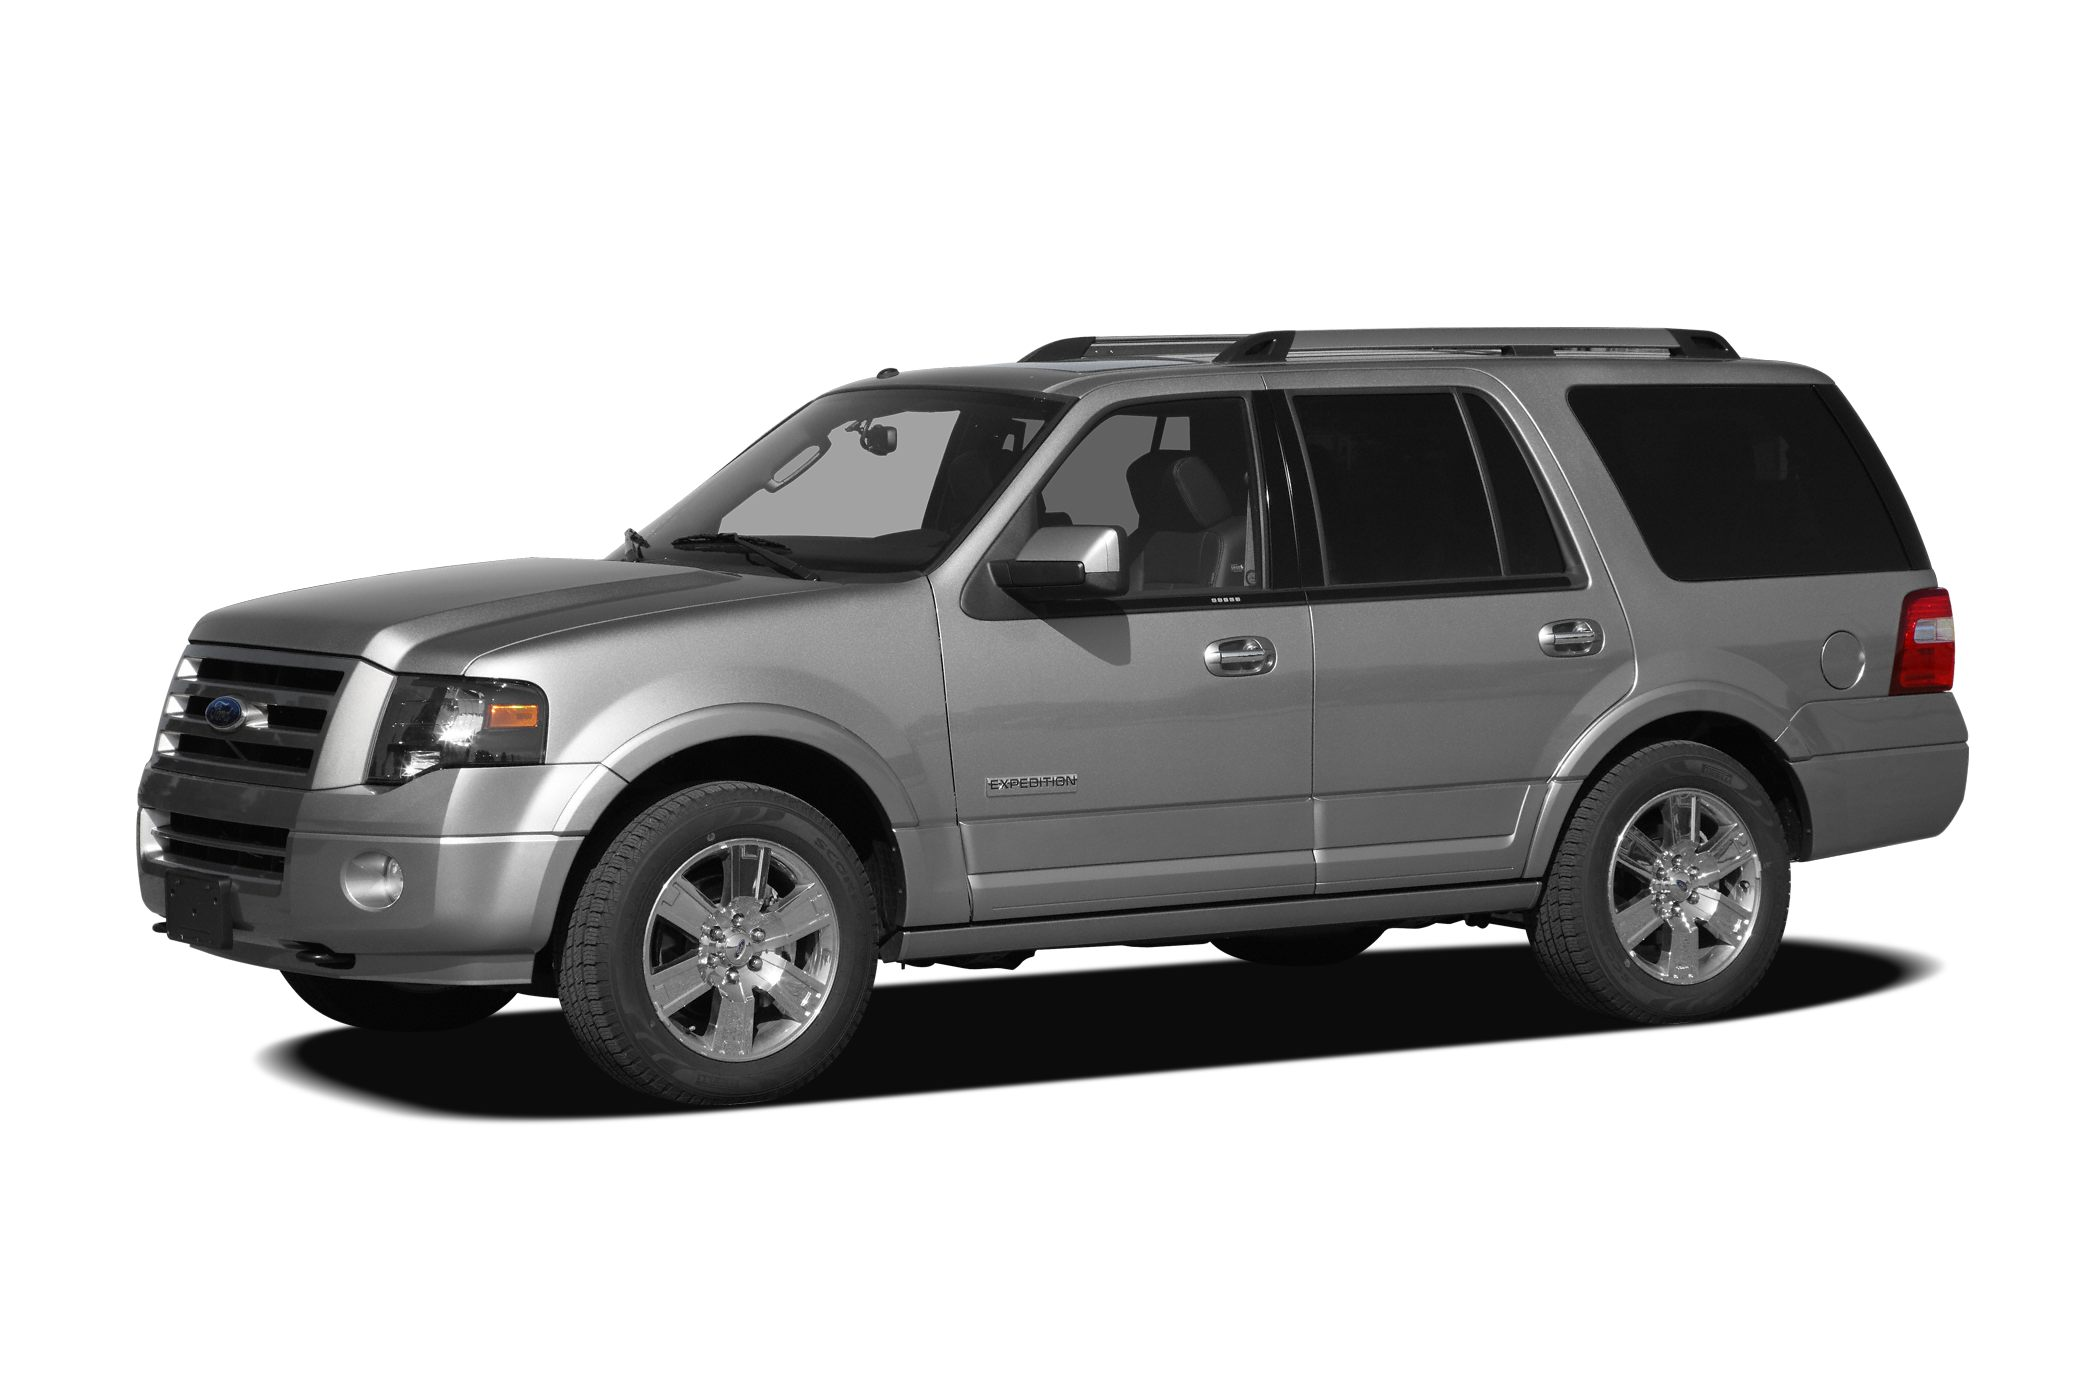 2007 Ford Expedition Limited Miles 104714Color Oxford White Clearcoat Stock FH2106A VIN 1FMF